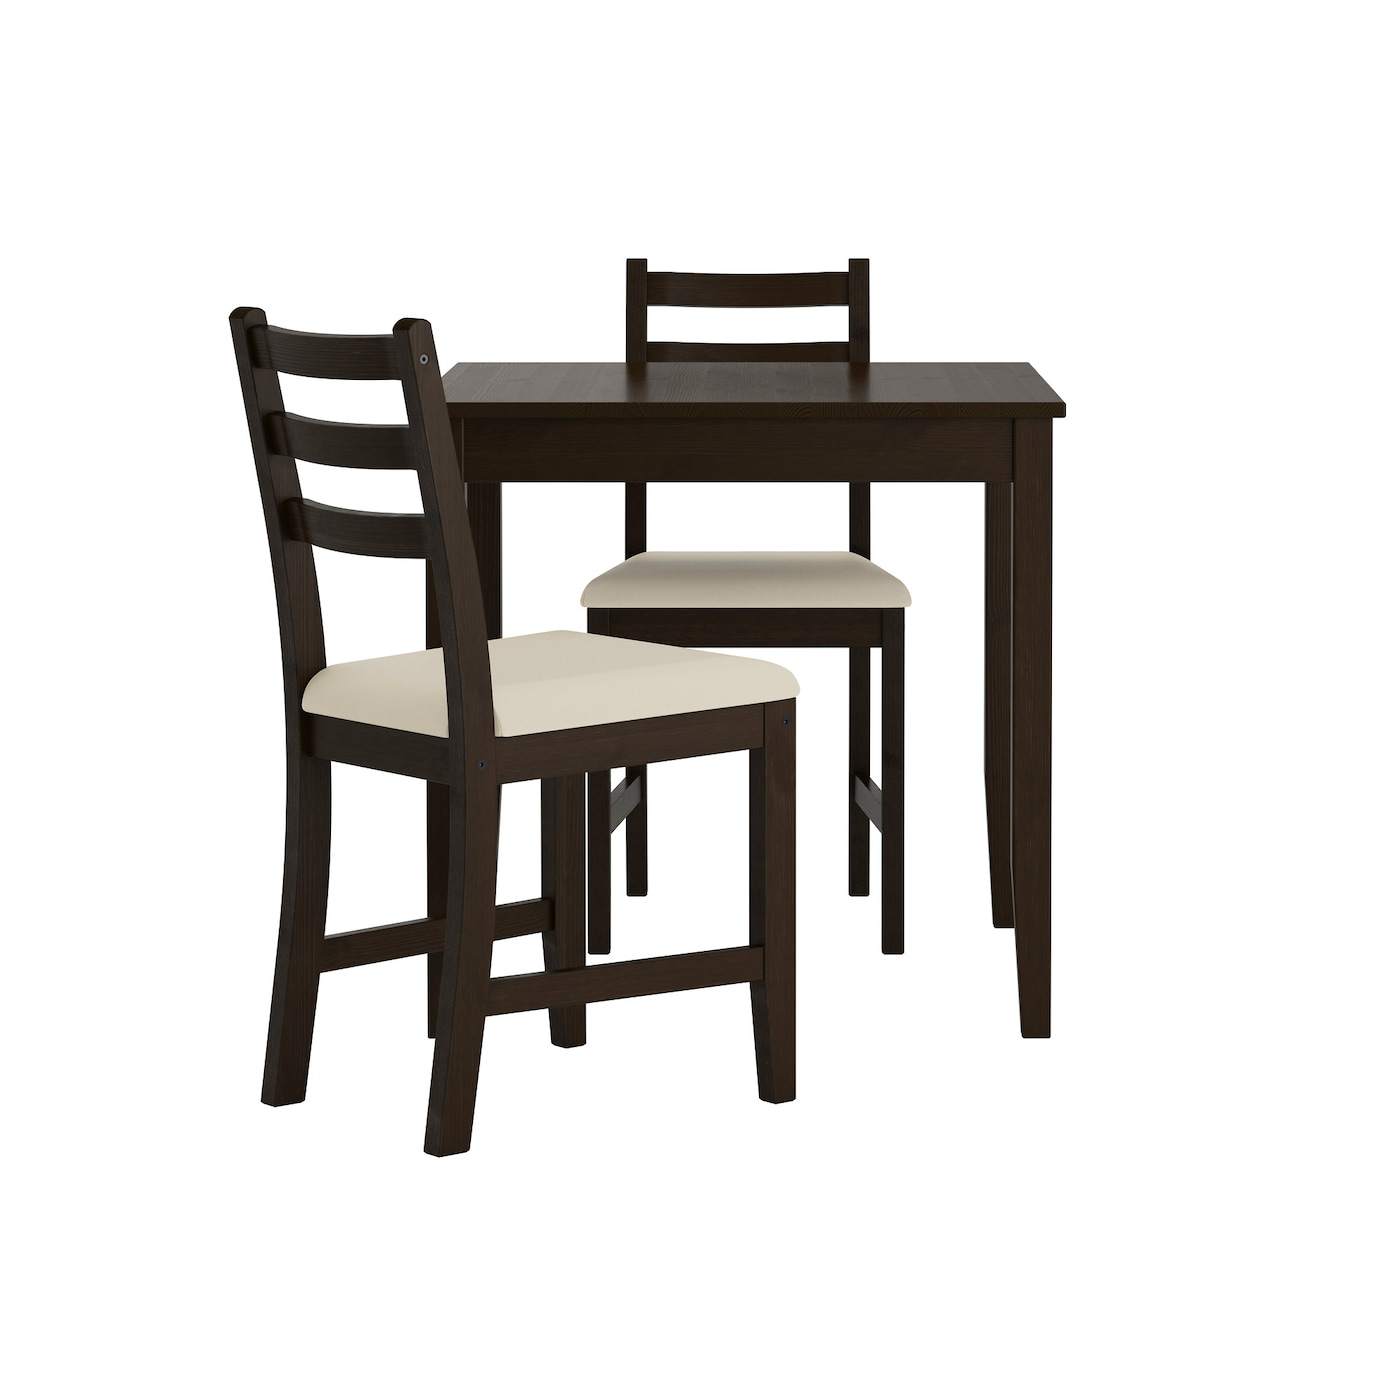 Perfect IKEA LERHAMN Table And 2 Chairs